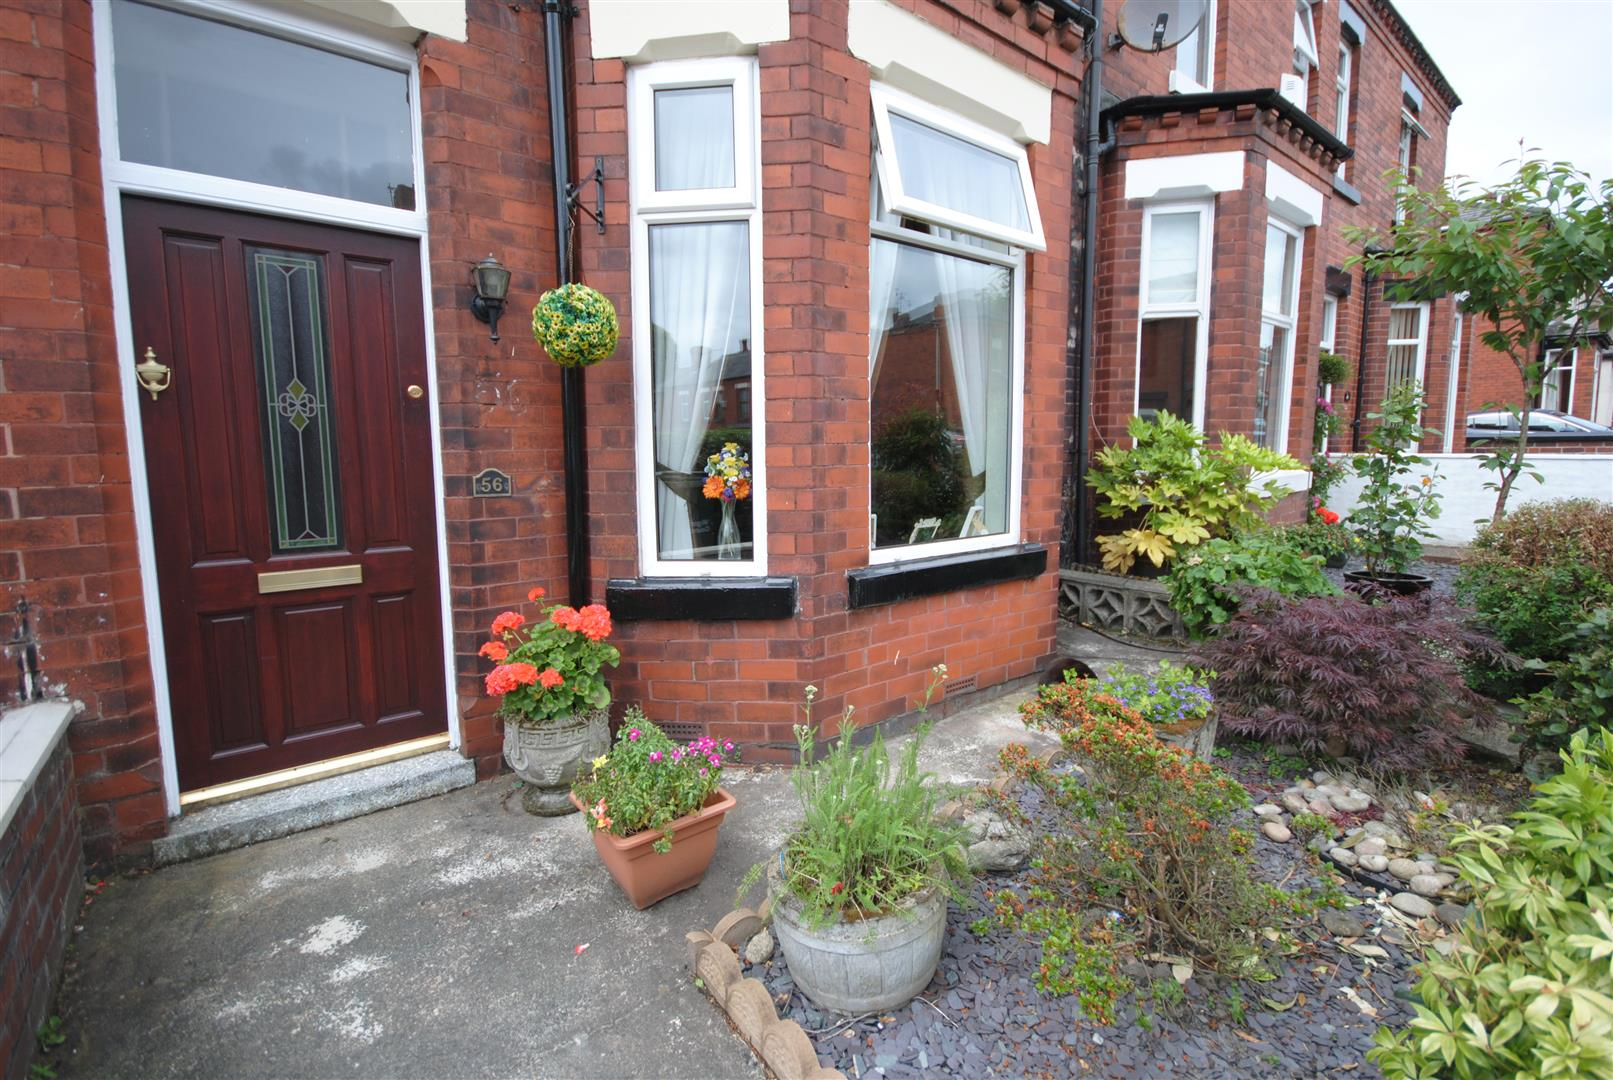 3 Bedrooms Terraced House for sale in Hodges Street, Wigan